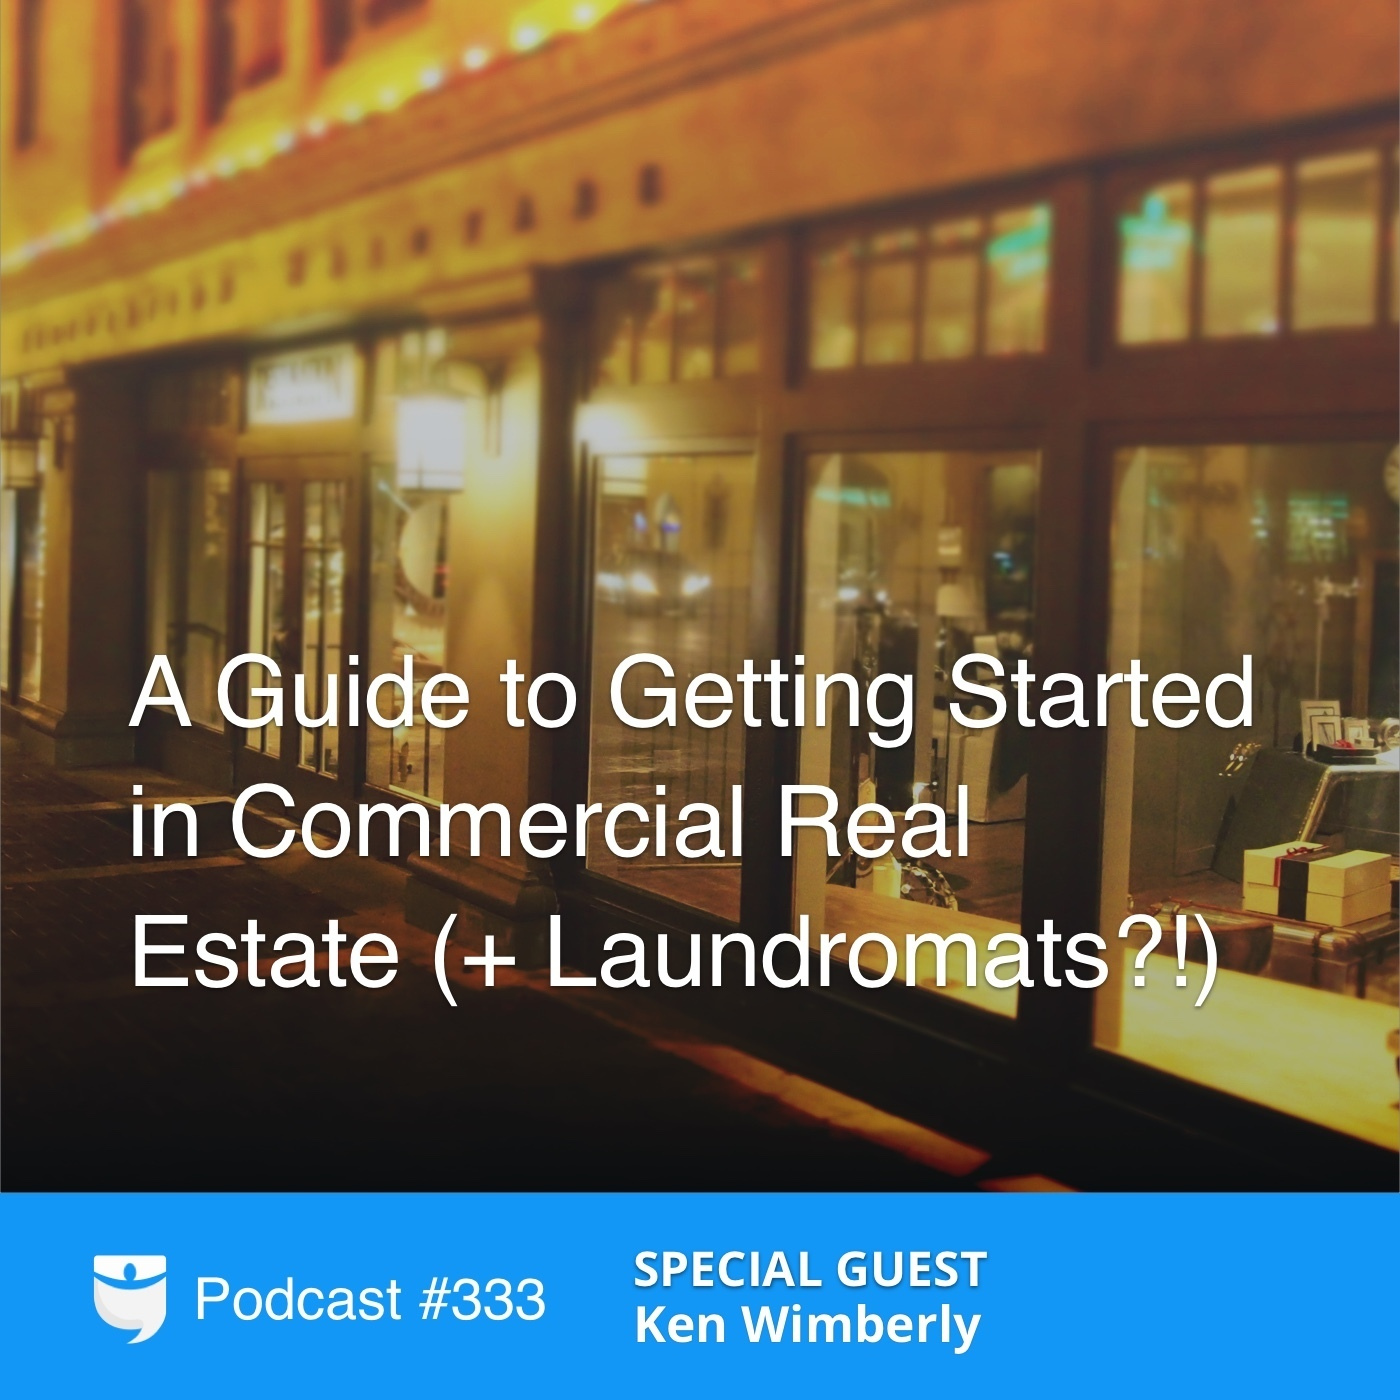 #333: A Guide to Getting Started in Commercial Real Estate (+ Laundromats?!) With Ken Wimberly